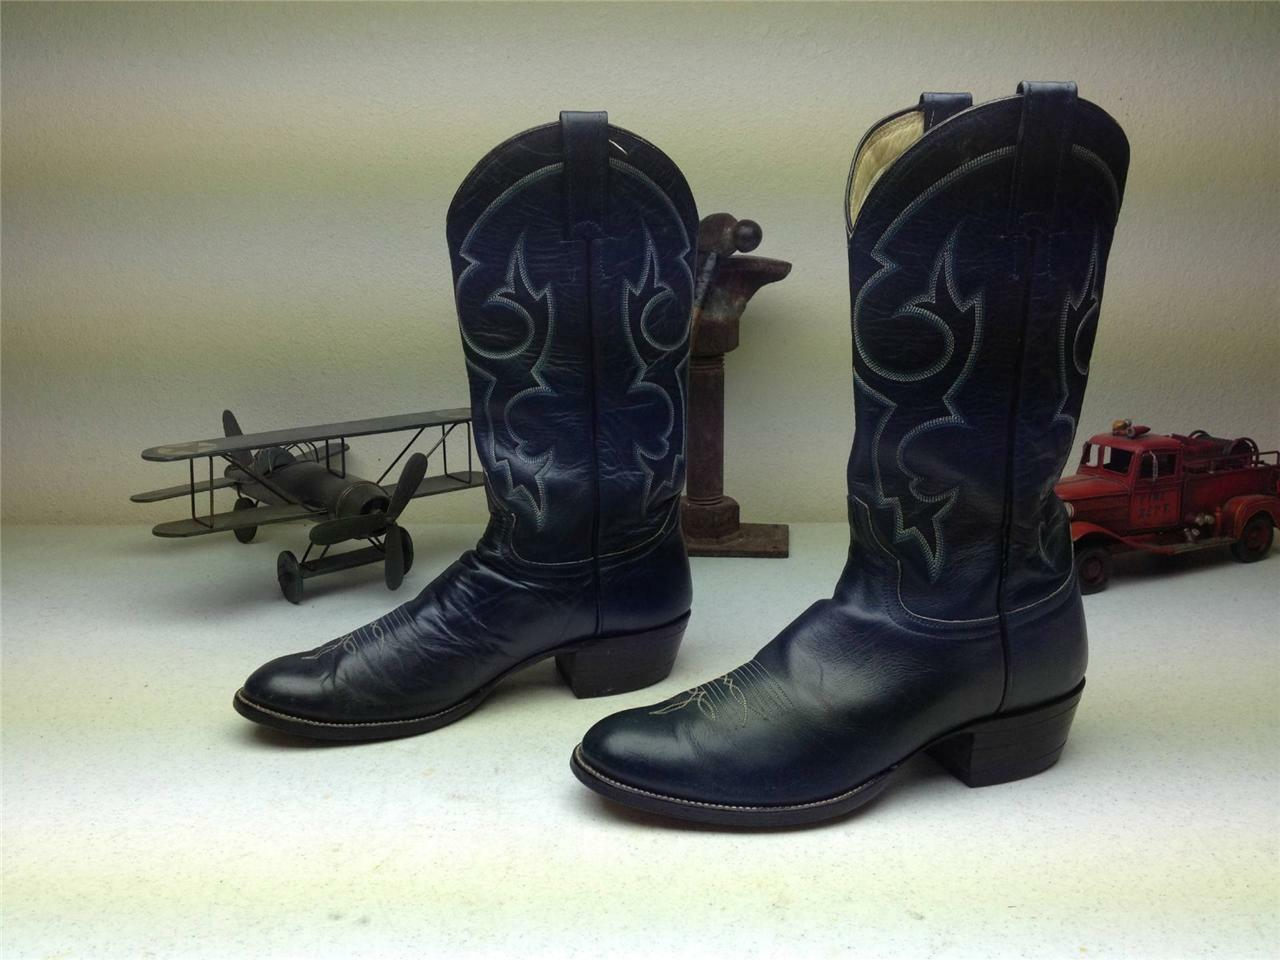 VINTAGE ADAMS 1984 BLUE BLUE BLUE LEATHER DISTRESSED WESTERN COWBOY BOOTS SIZE 9-9.5 D 7967d3